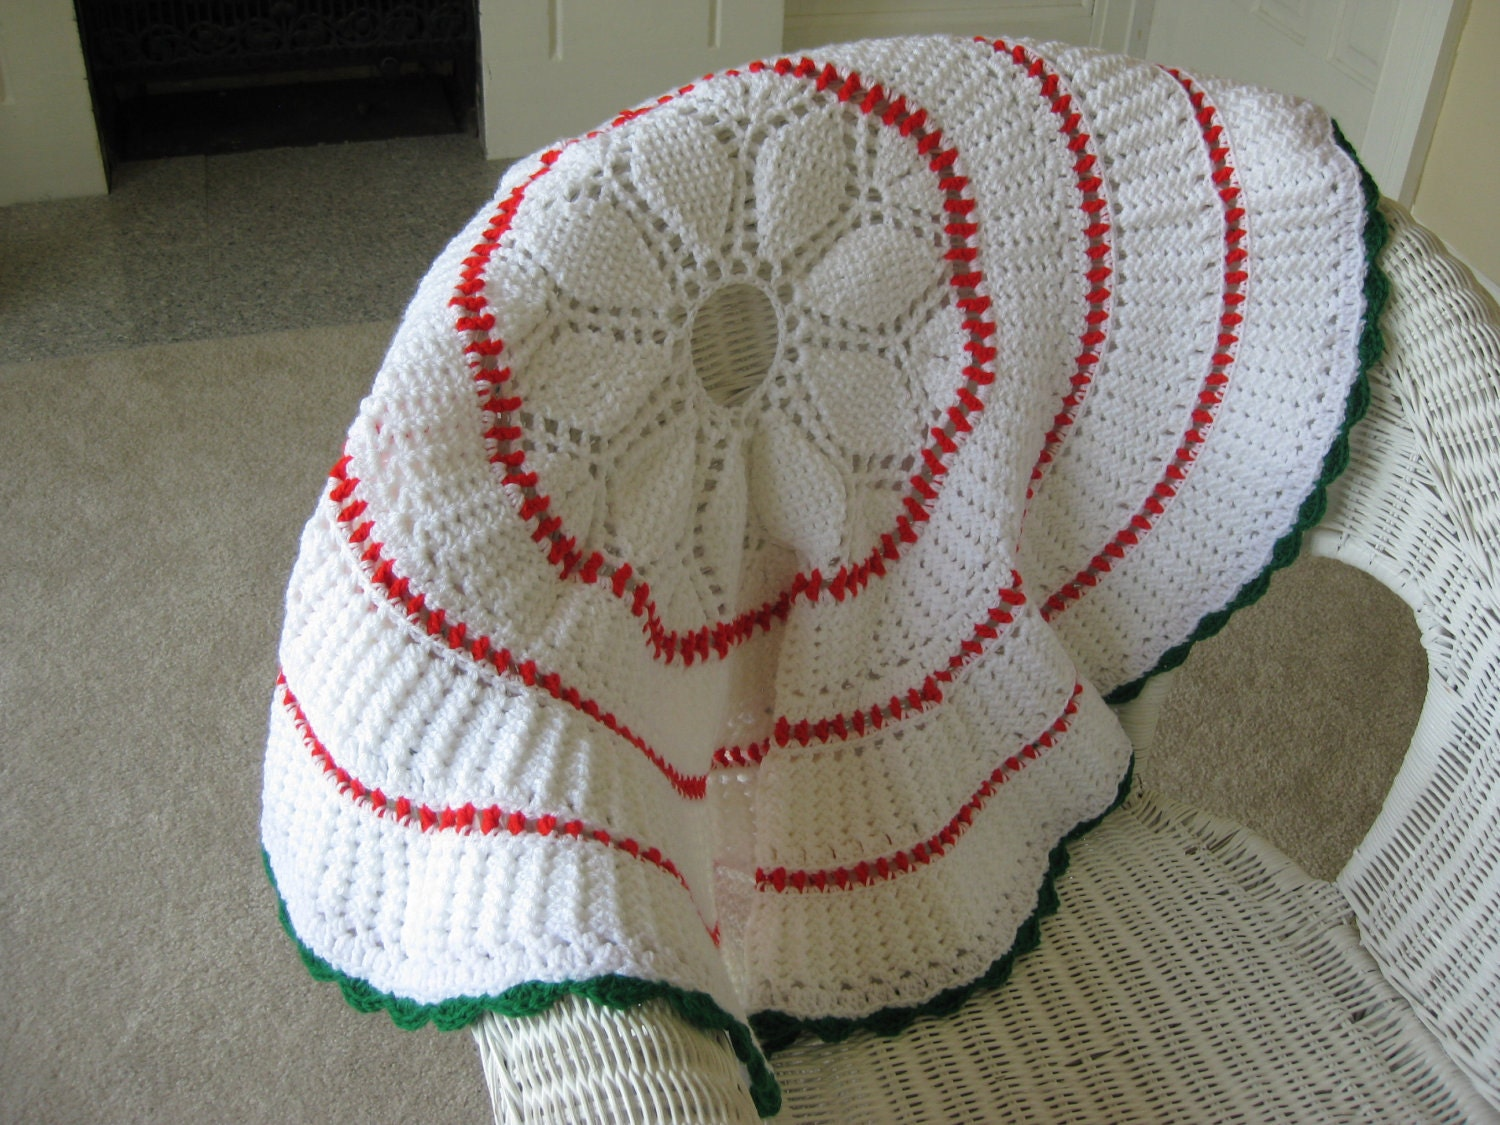 Crochet Xmas Tree Skirt : Crochet Christmas Tree Skirt Red White and Green 36 by sewingnuck